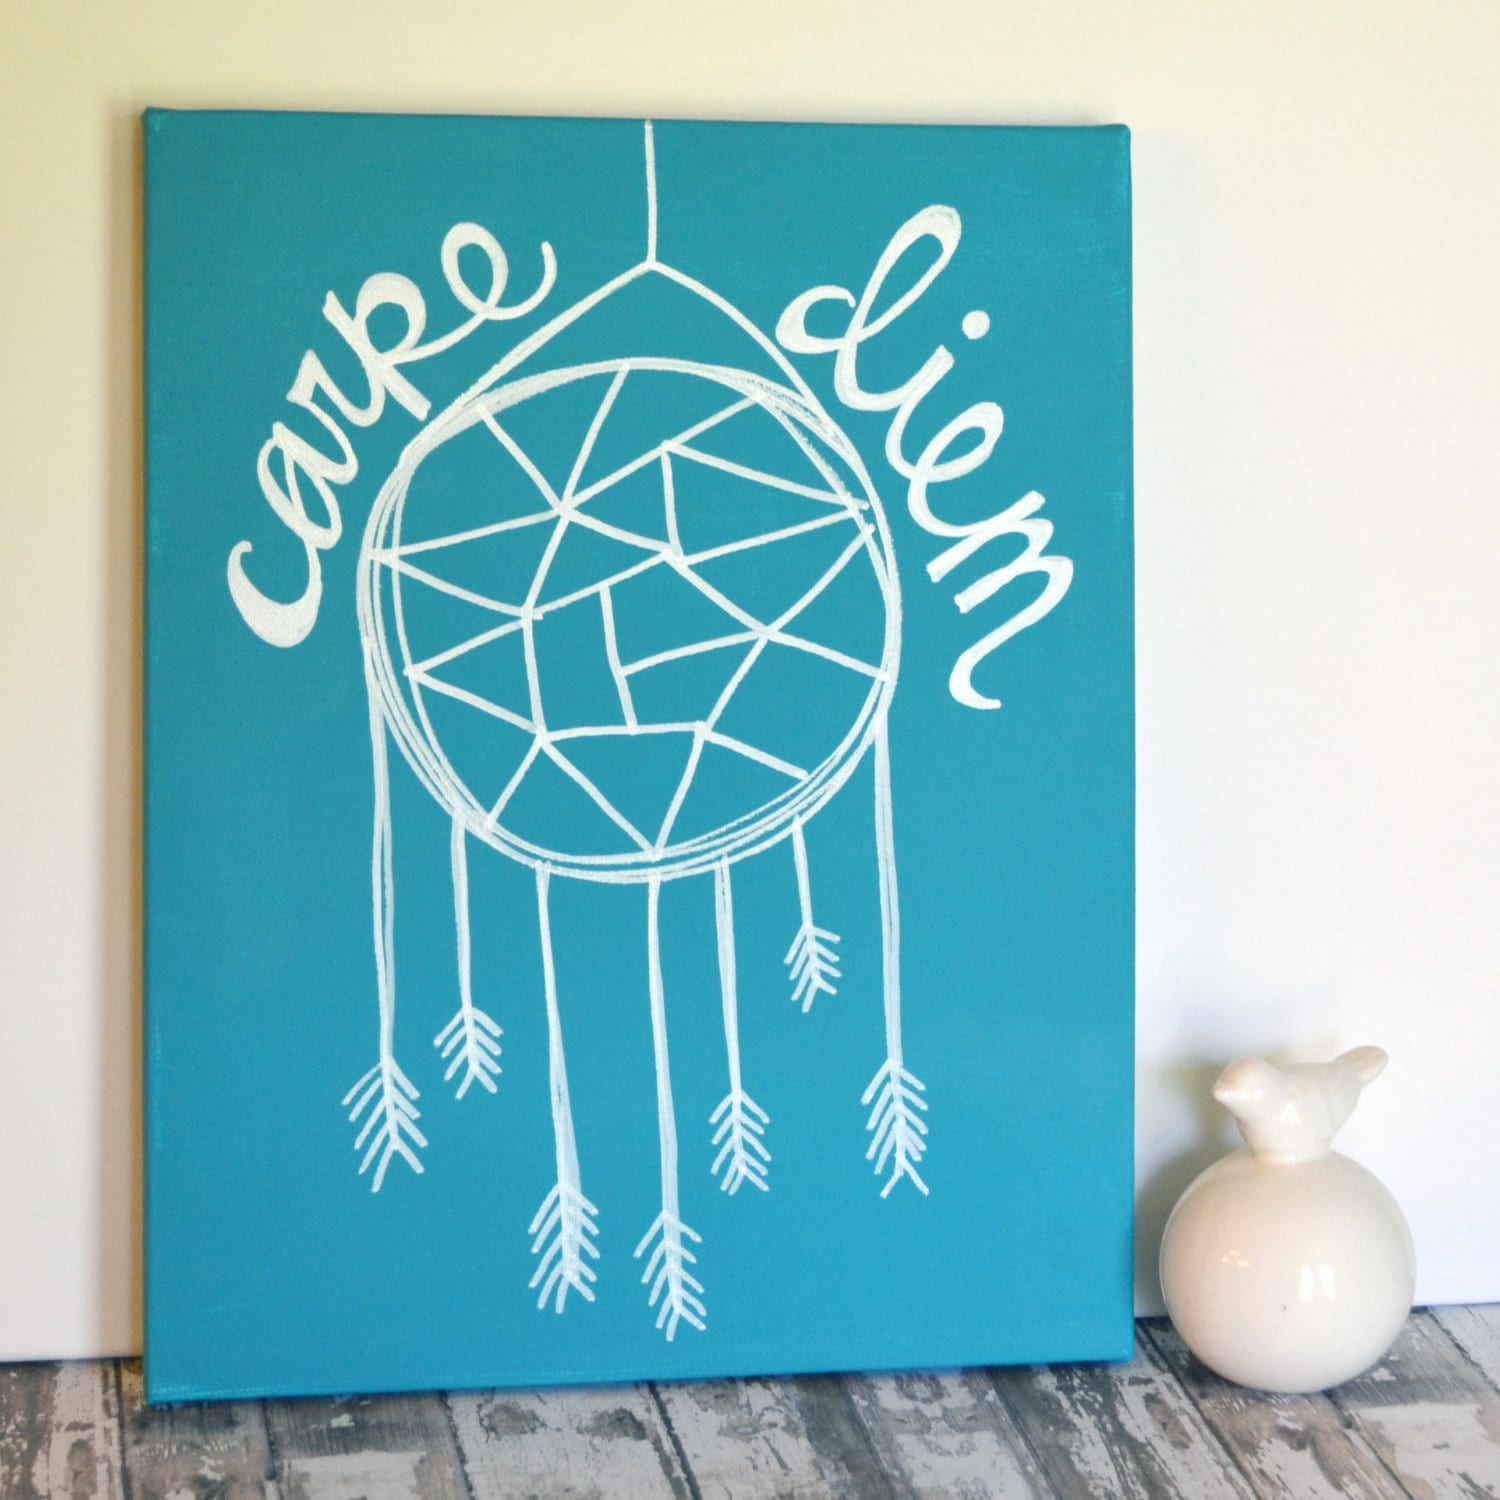 Quote Paintings Carpe Diem Canvas Painting Teal Or Any Color Dream Catcher